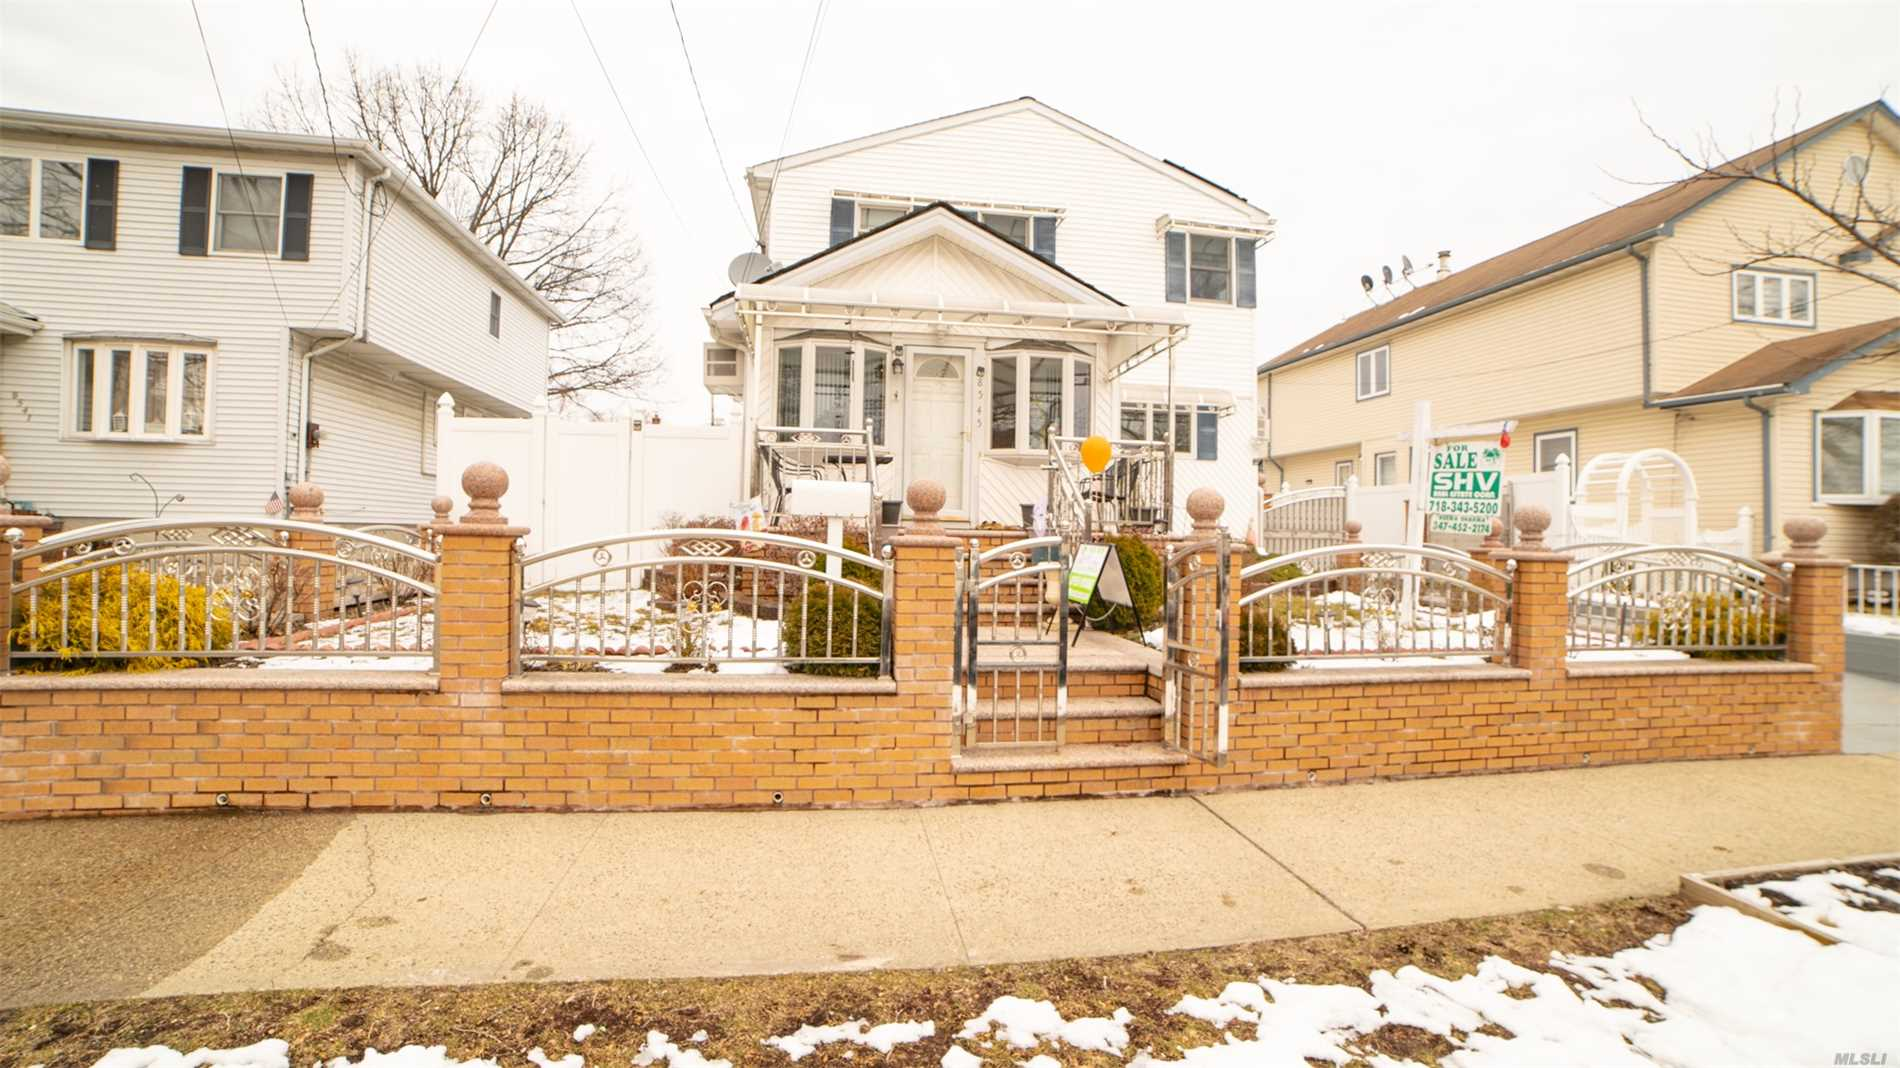 Colonial 5 Bedrooms, Three Bath, Family Room, Good For Extended Family, Great Location. Solar System(Leased), 50/100 lot size, garage, renovated